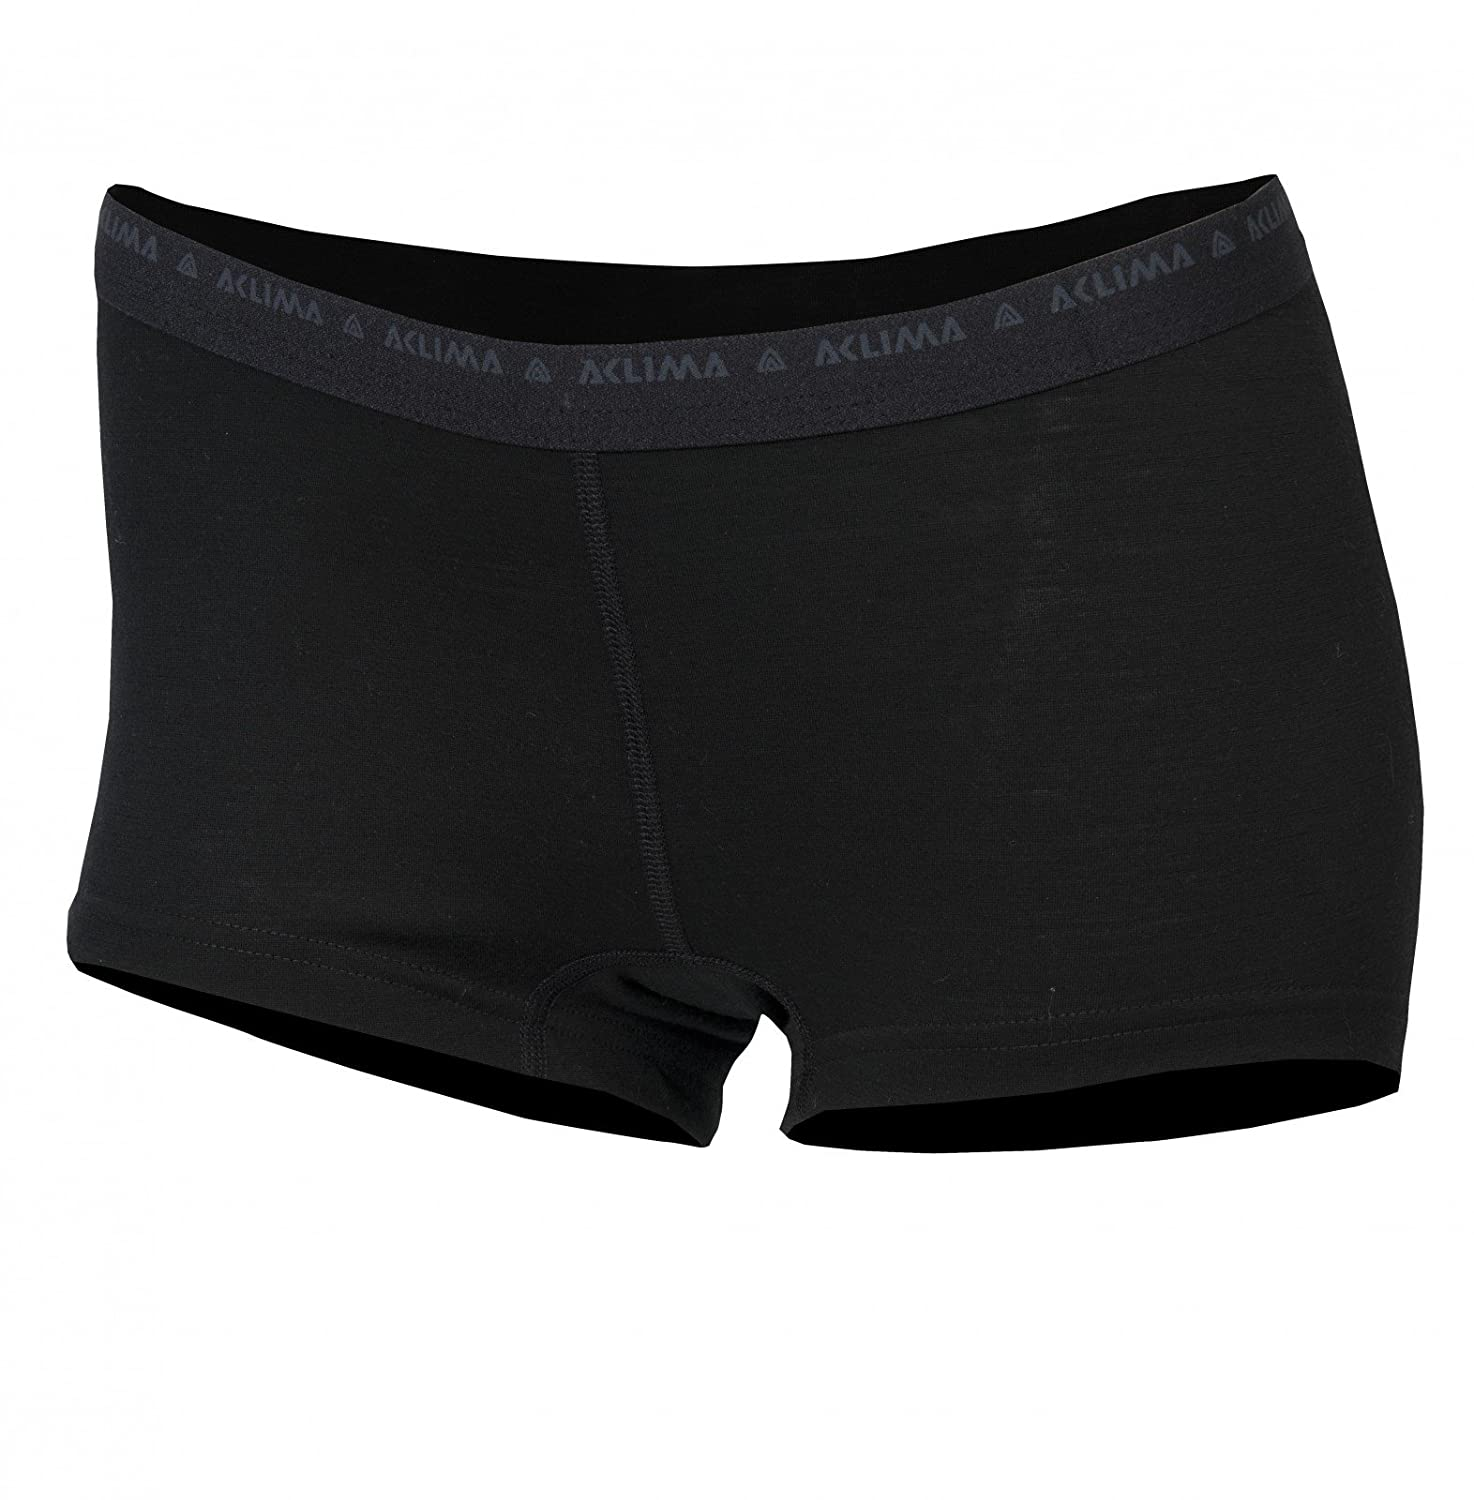 Aclima Lightwool Hipster Shorts Damens